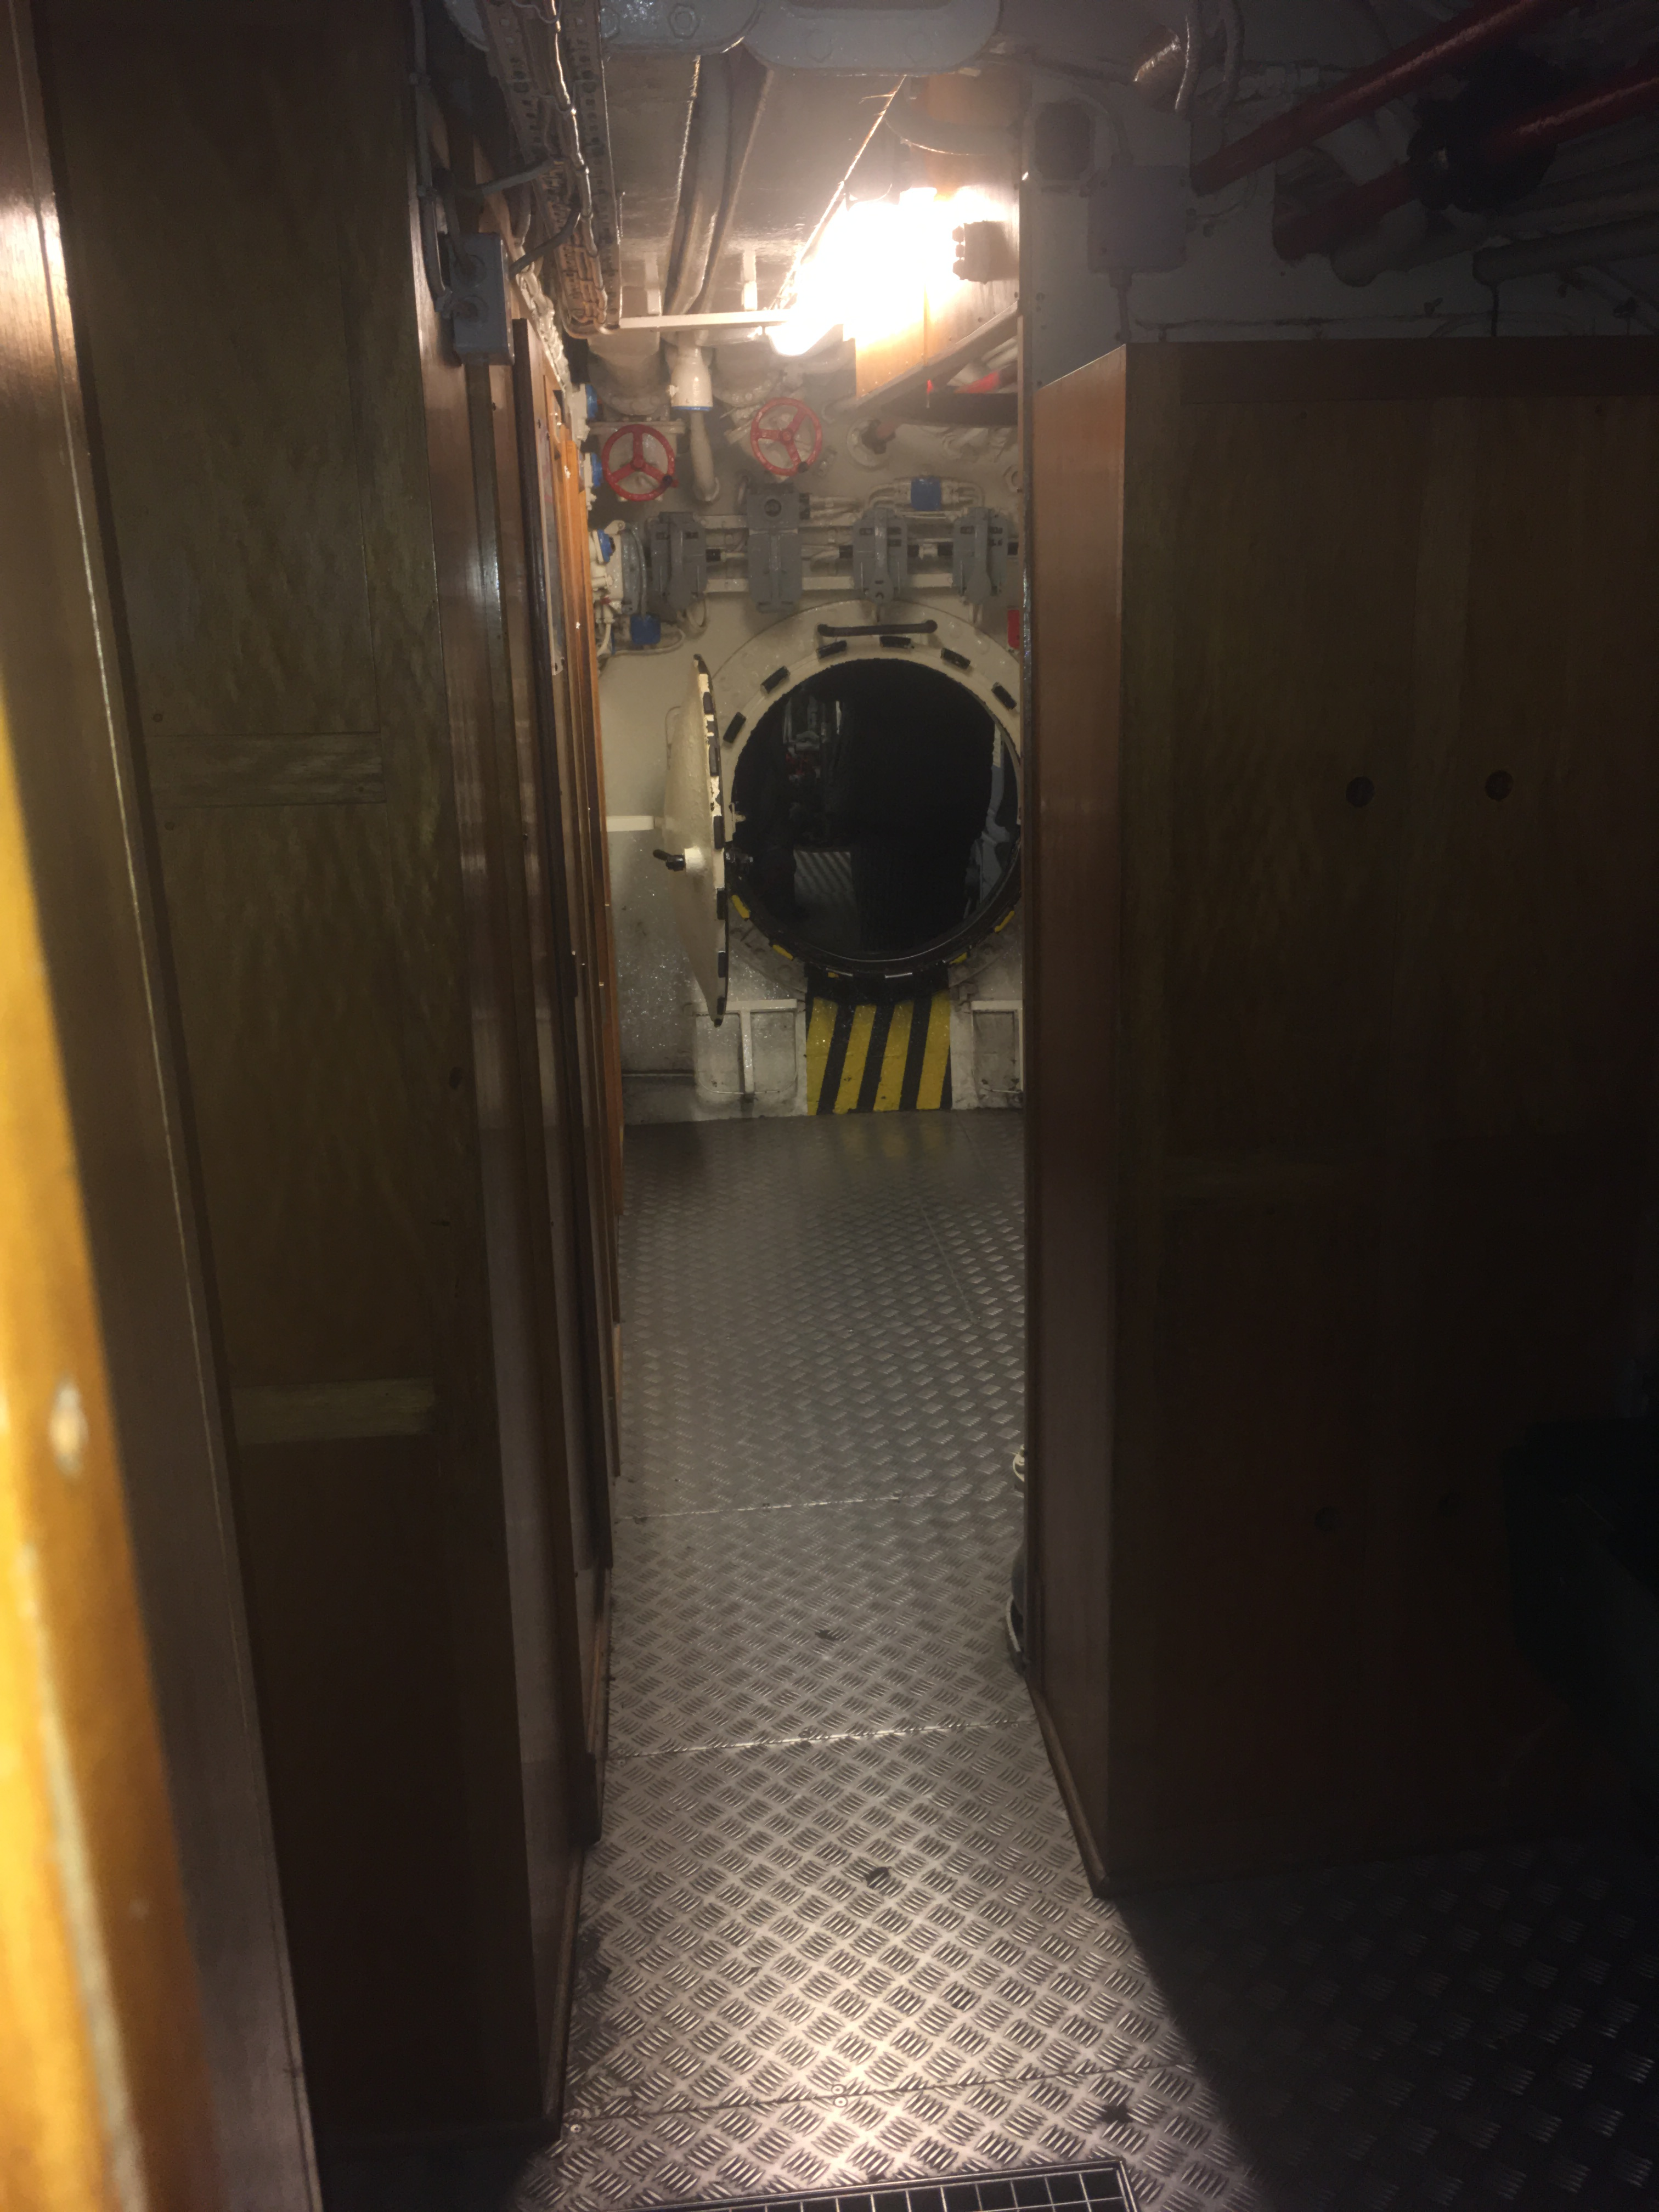 Things Helen Loves, view of corridor and small round hatch onboard submarine